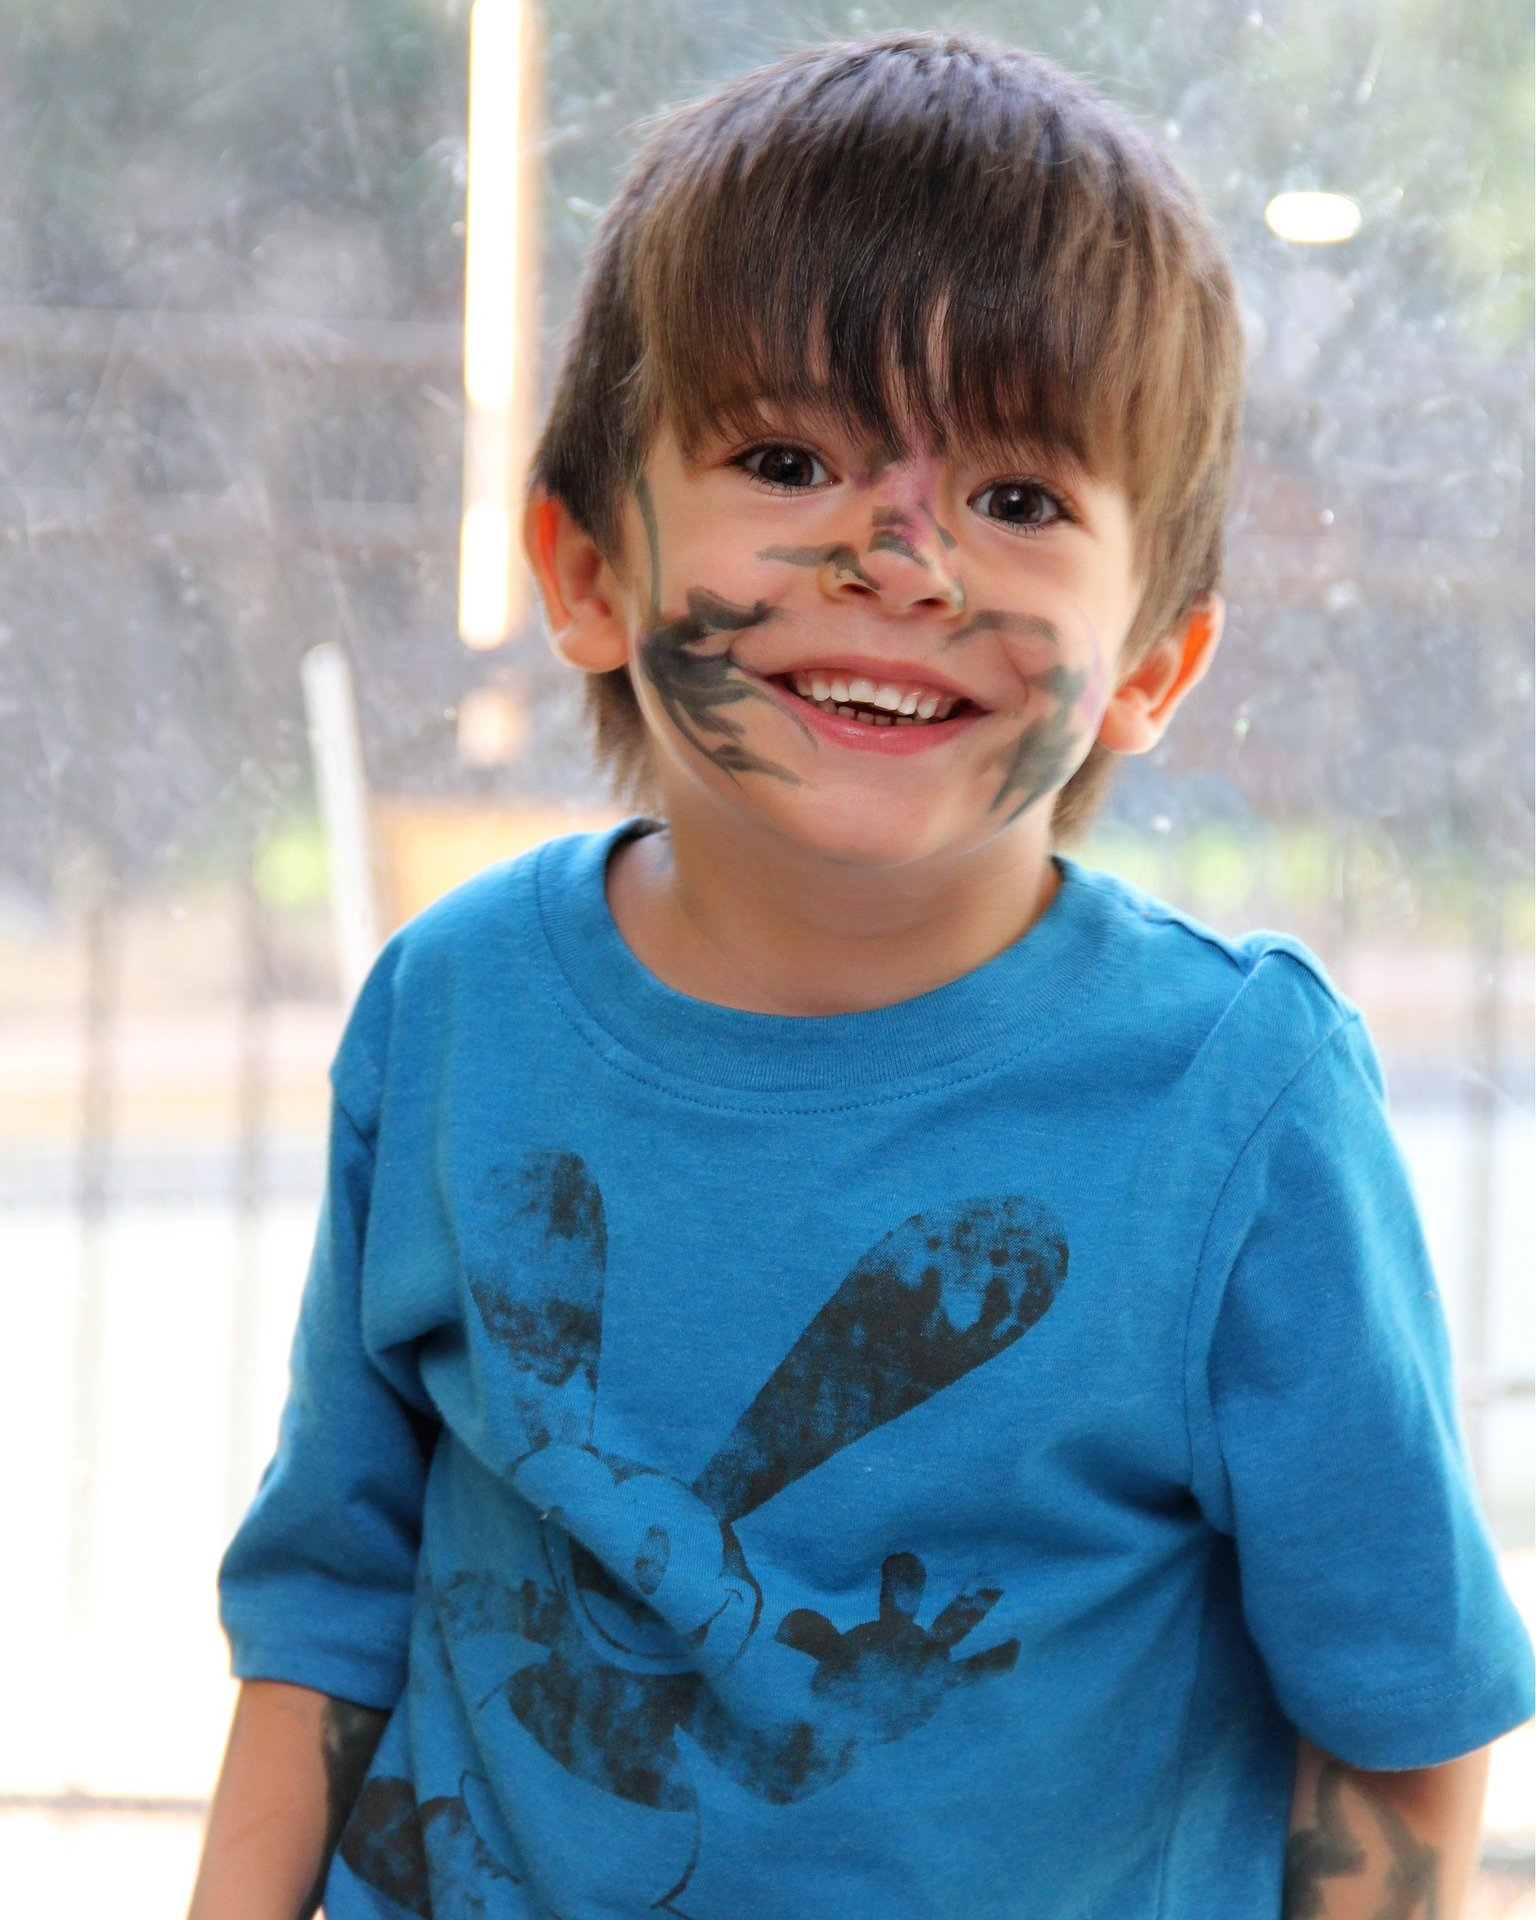 Pictured - A little boy with ink prints on his face smiles while having fun   Source: Pixabay